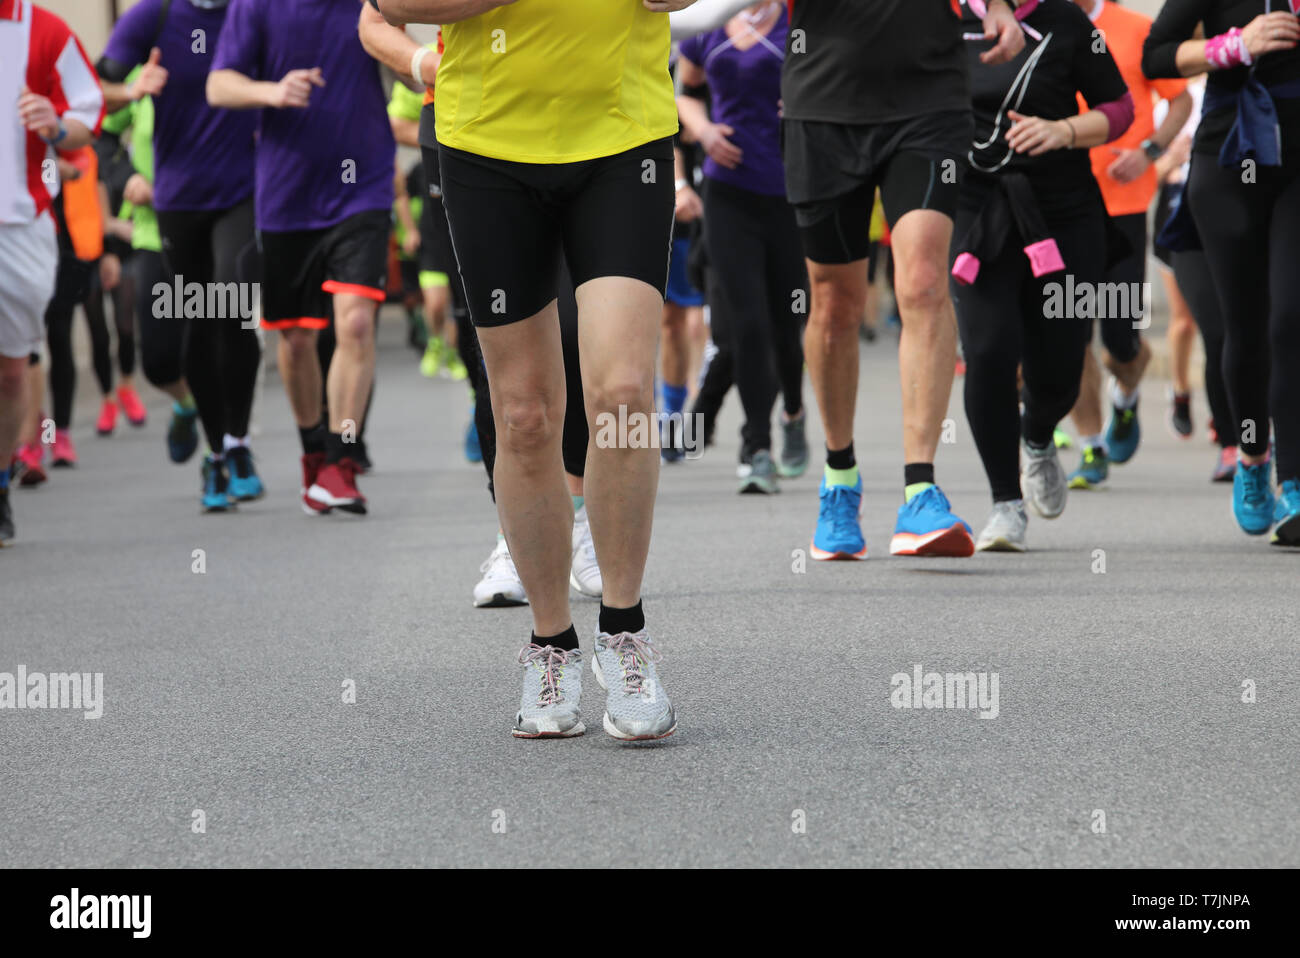 many legs of runners during the race in the city - Stock Image